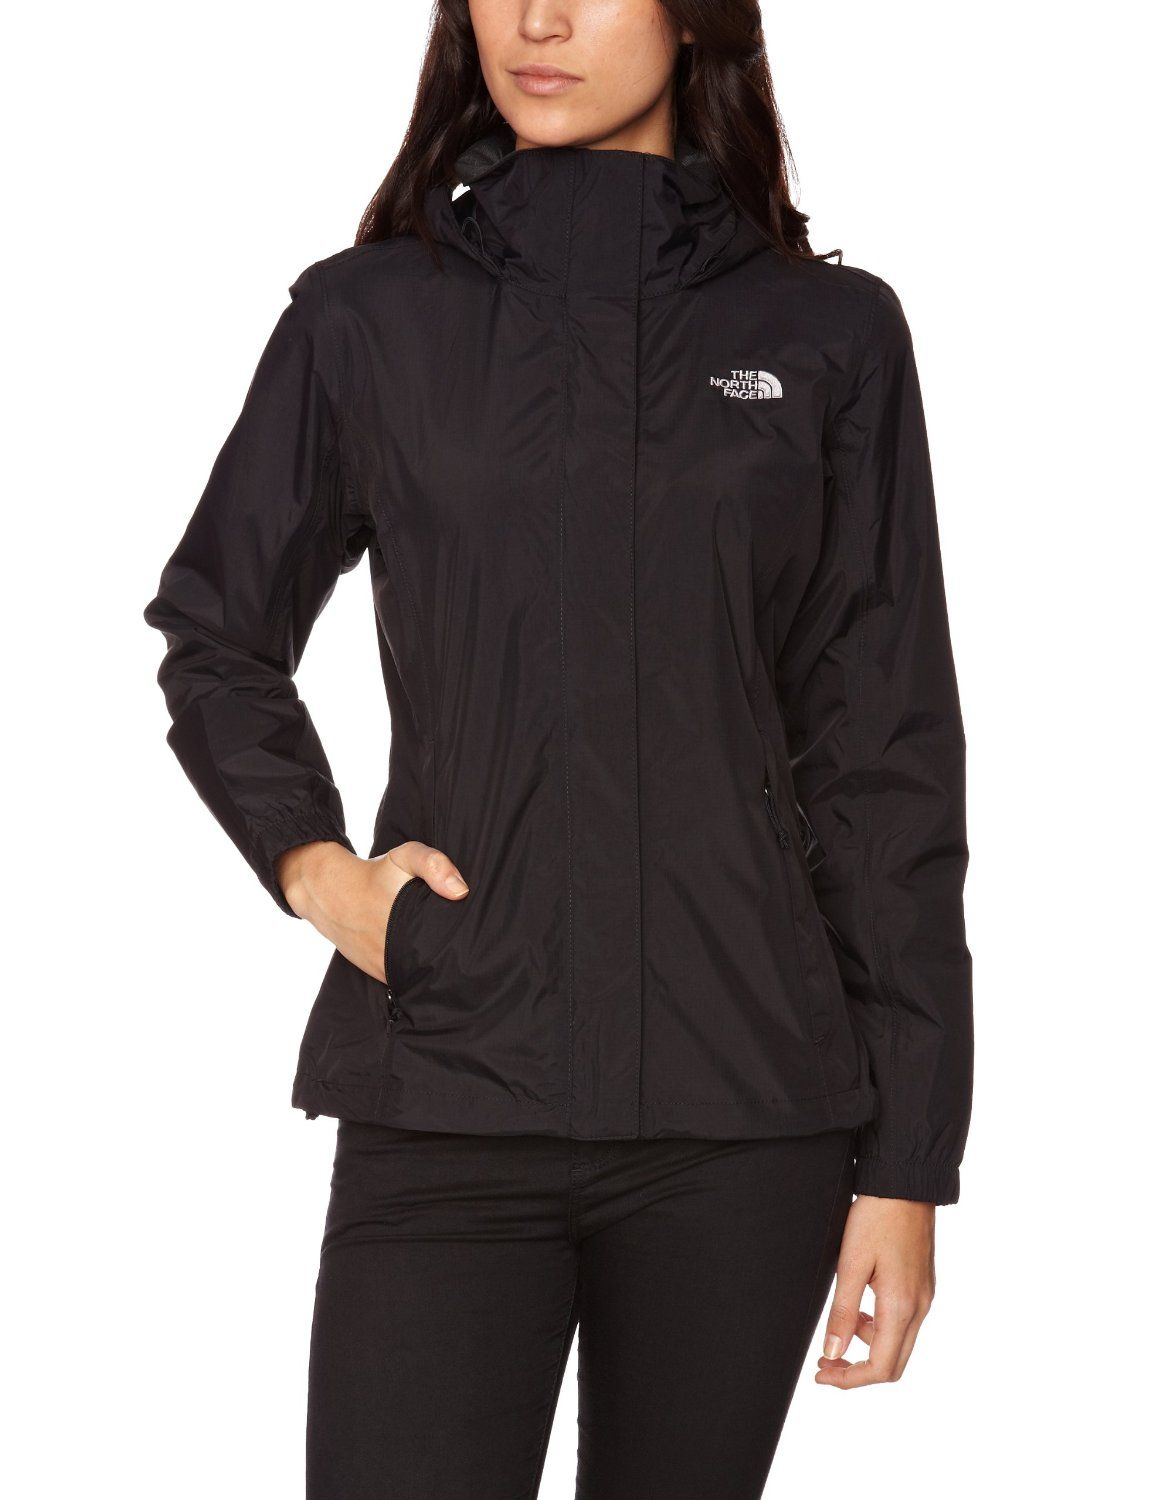 online store e6375 510eb The North Face Damen #Hardshelljacke Resolve: #winterjacke ...